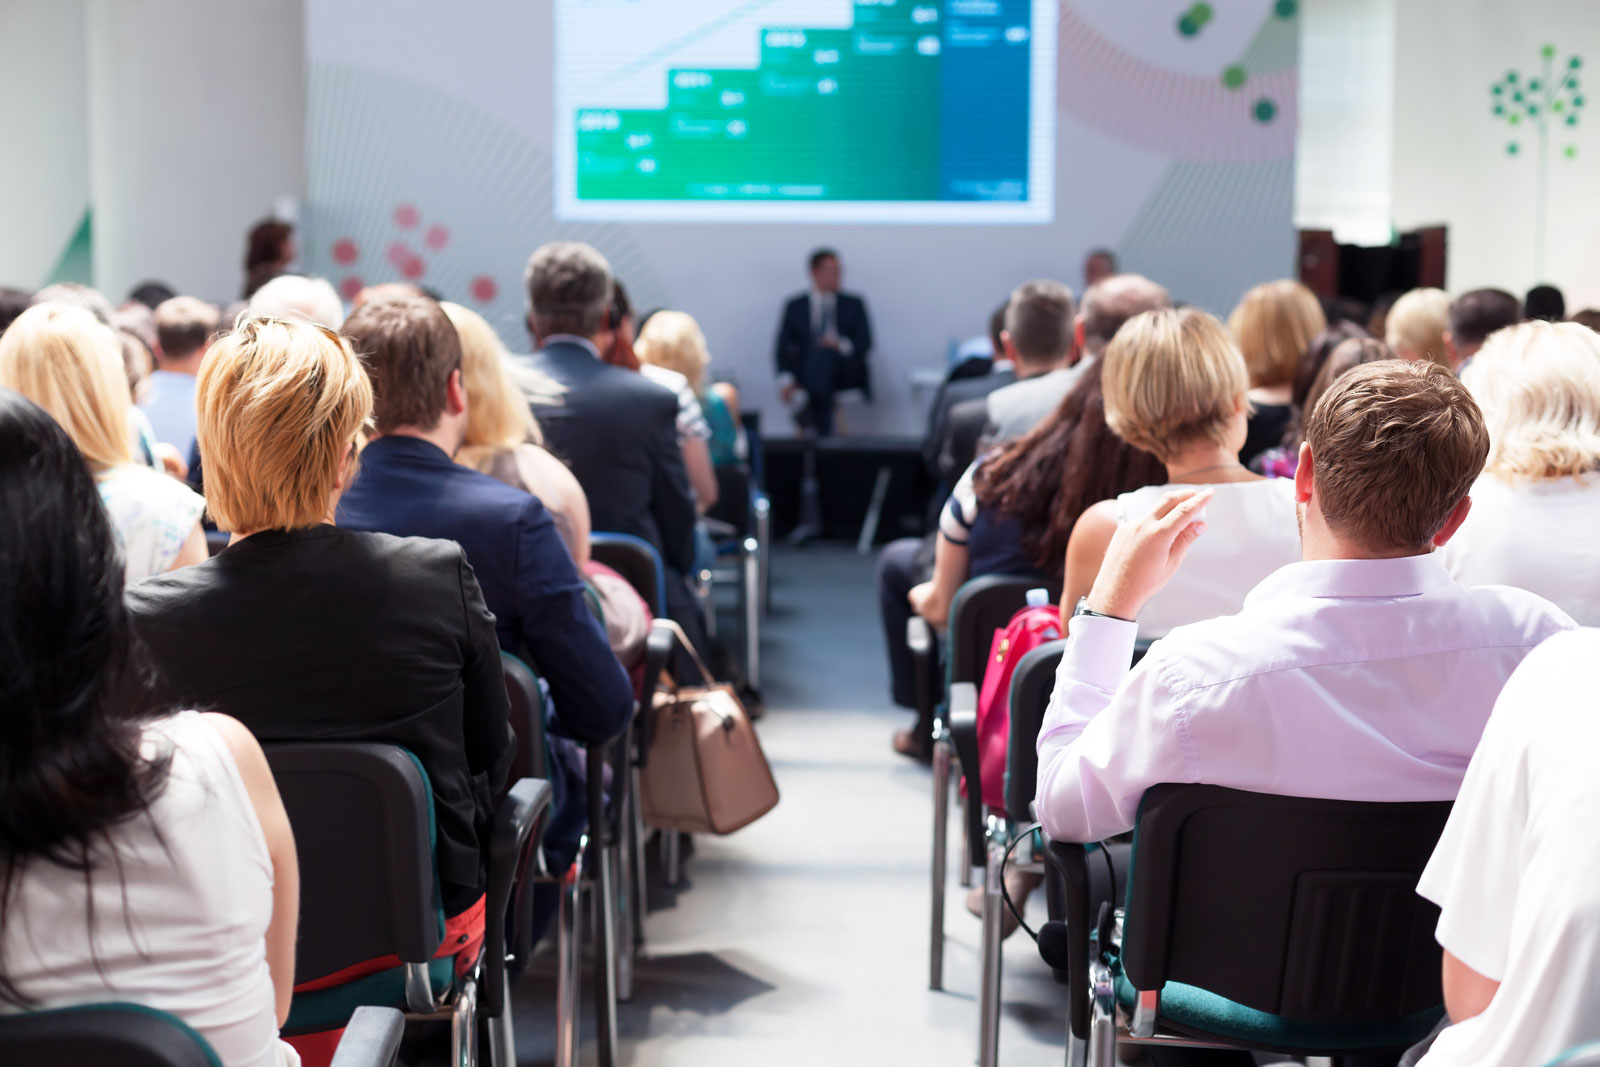 Conference | 5 Annual Content Marketing Conferences Worth Your While